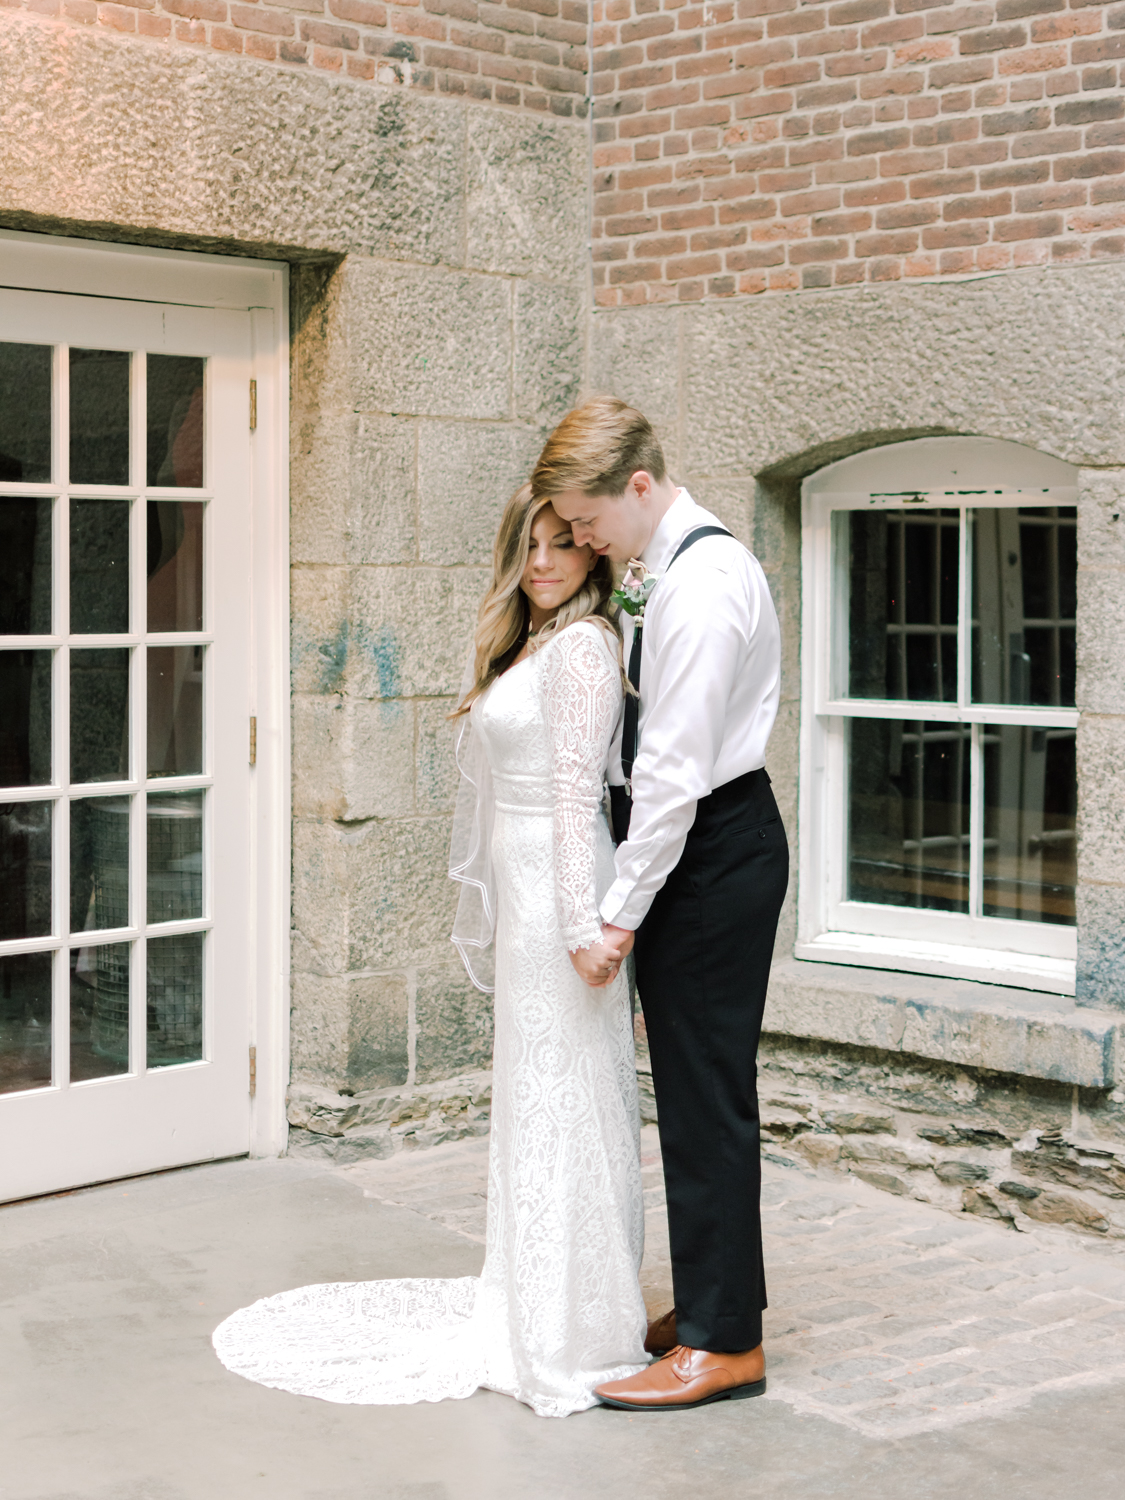 Jacqueline Anne Photography - Jessica and Aaron in Halifax-14.jpg